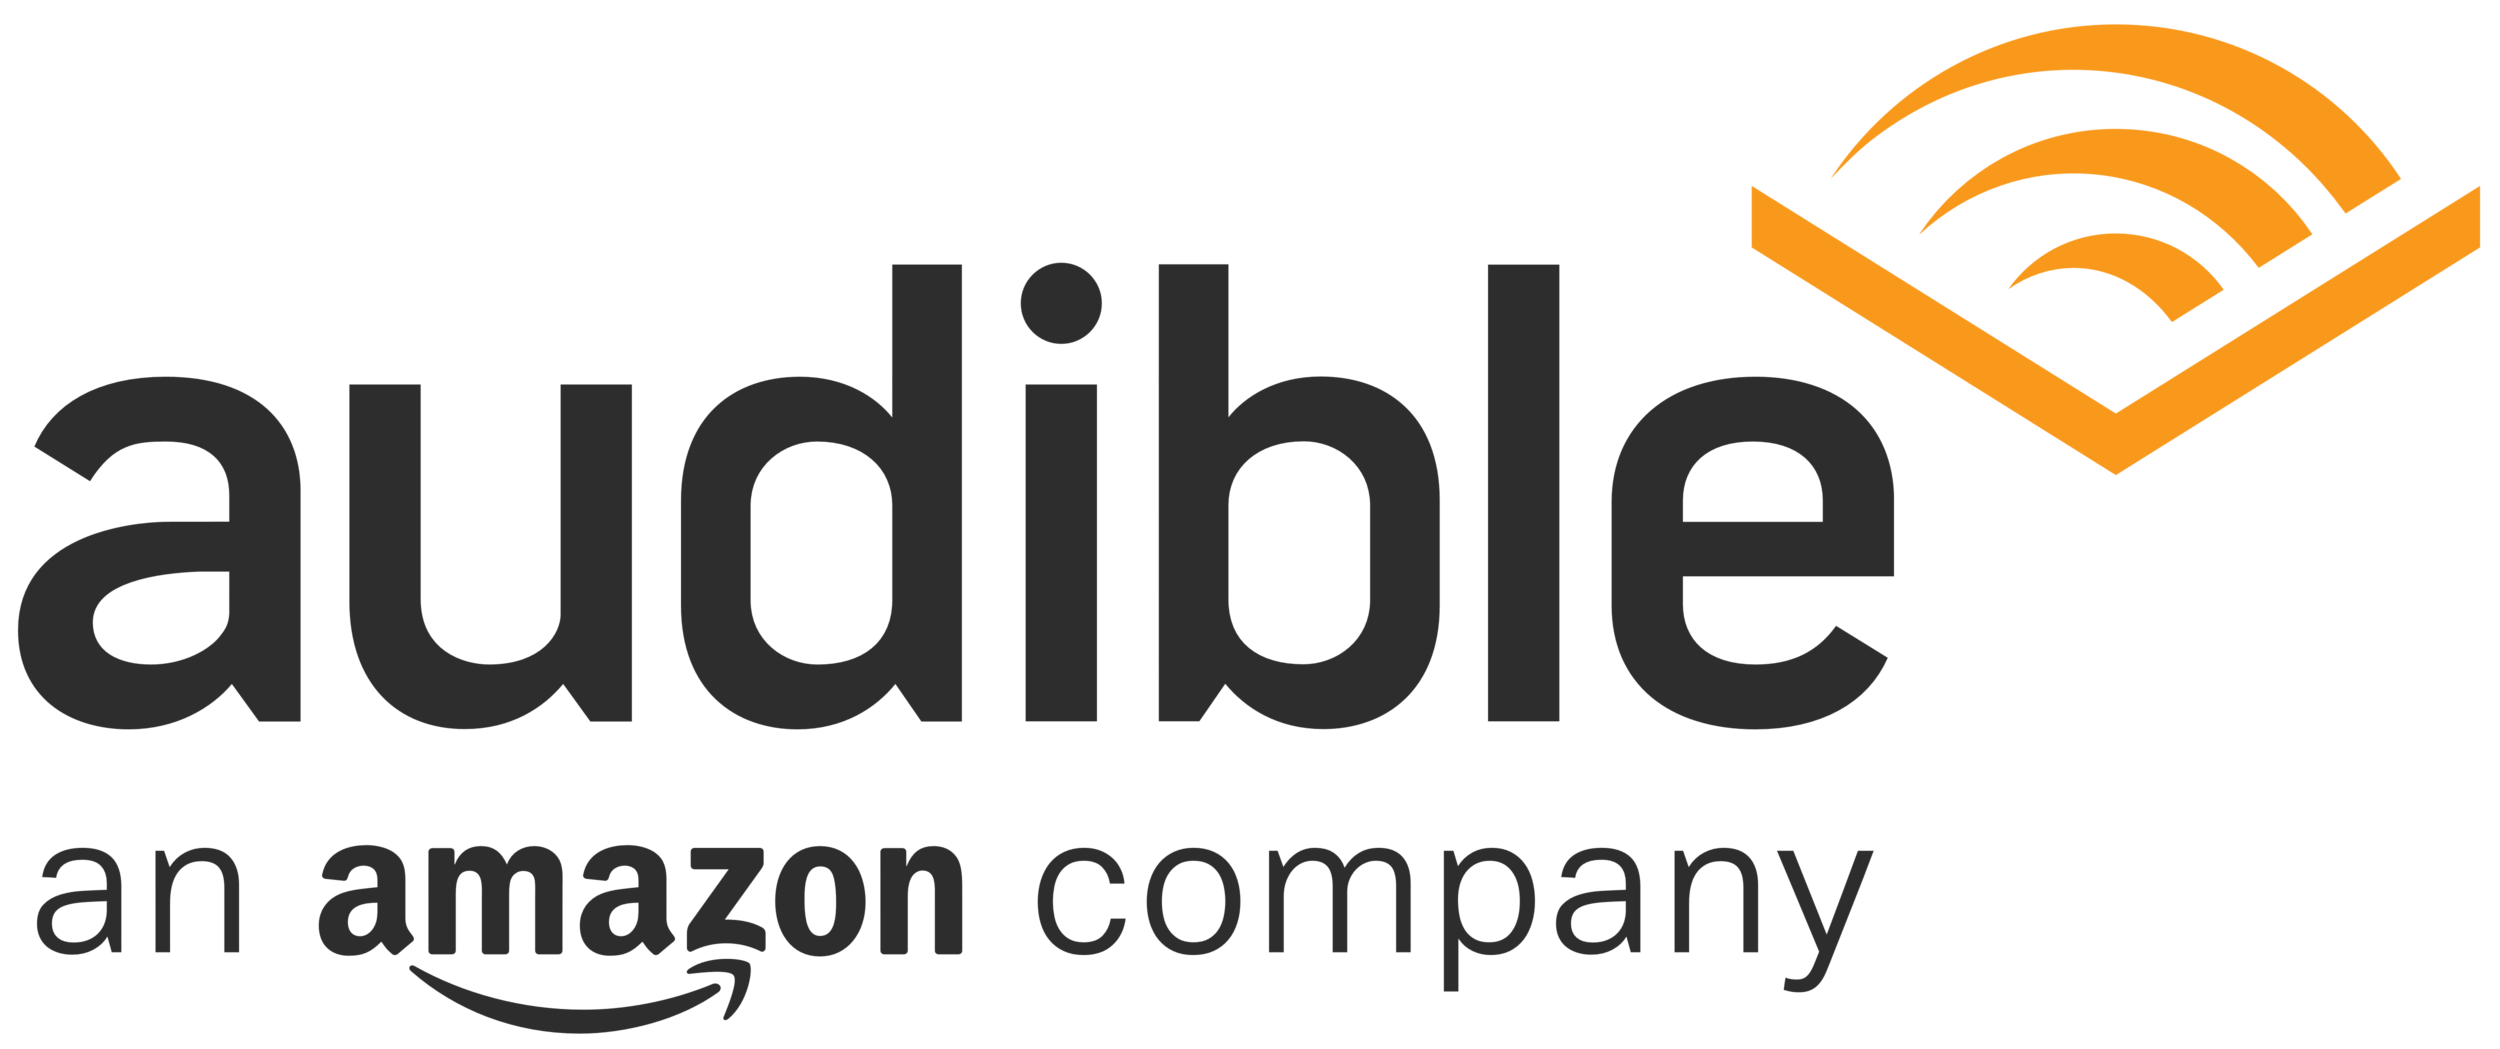 amazon-png-logo-vector-6705.png